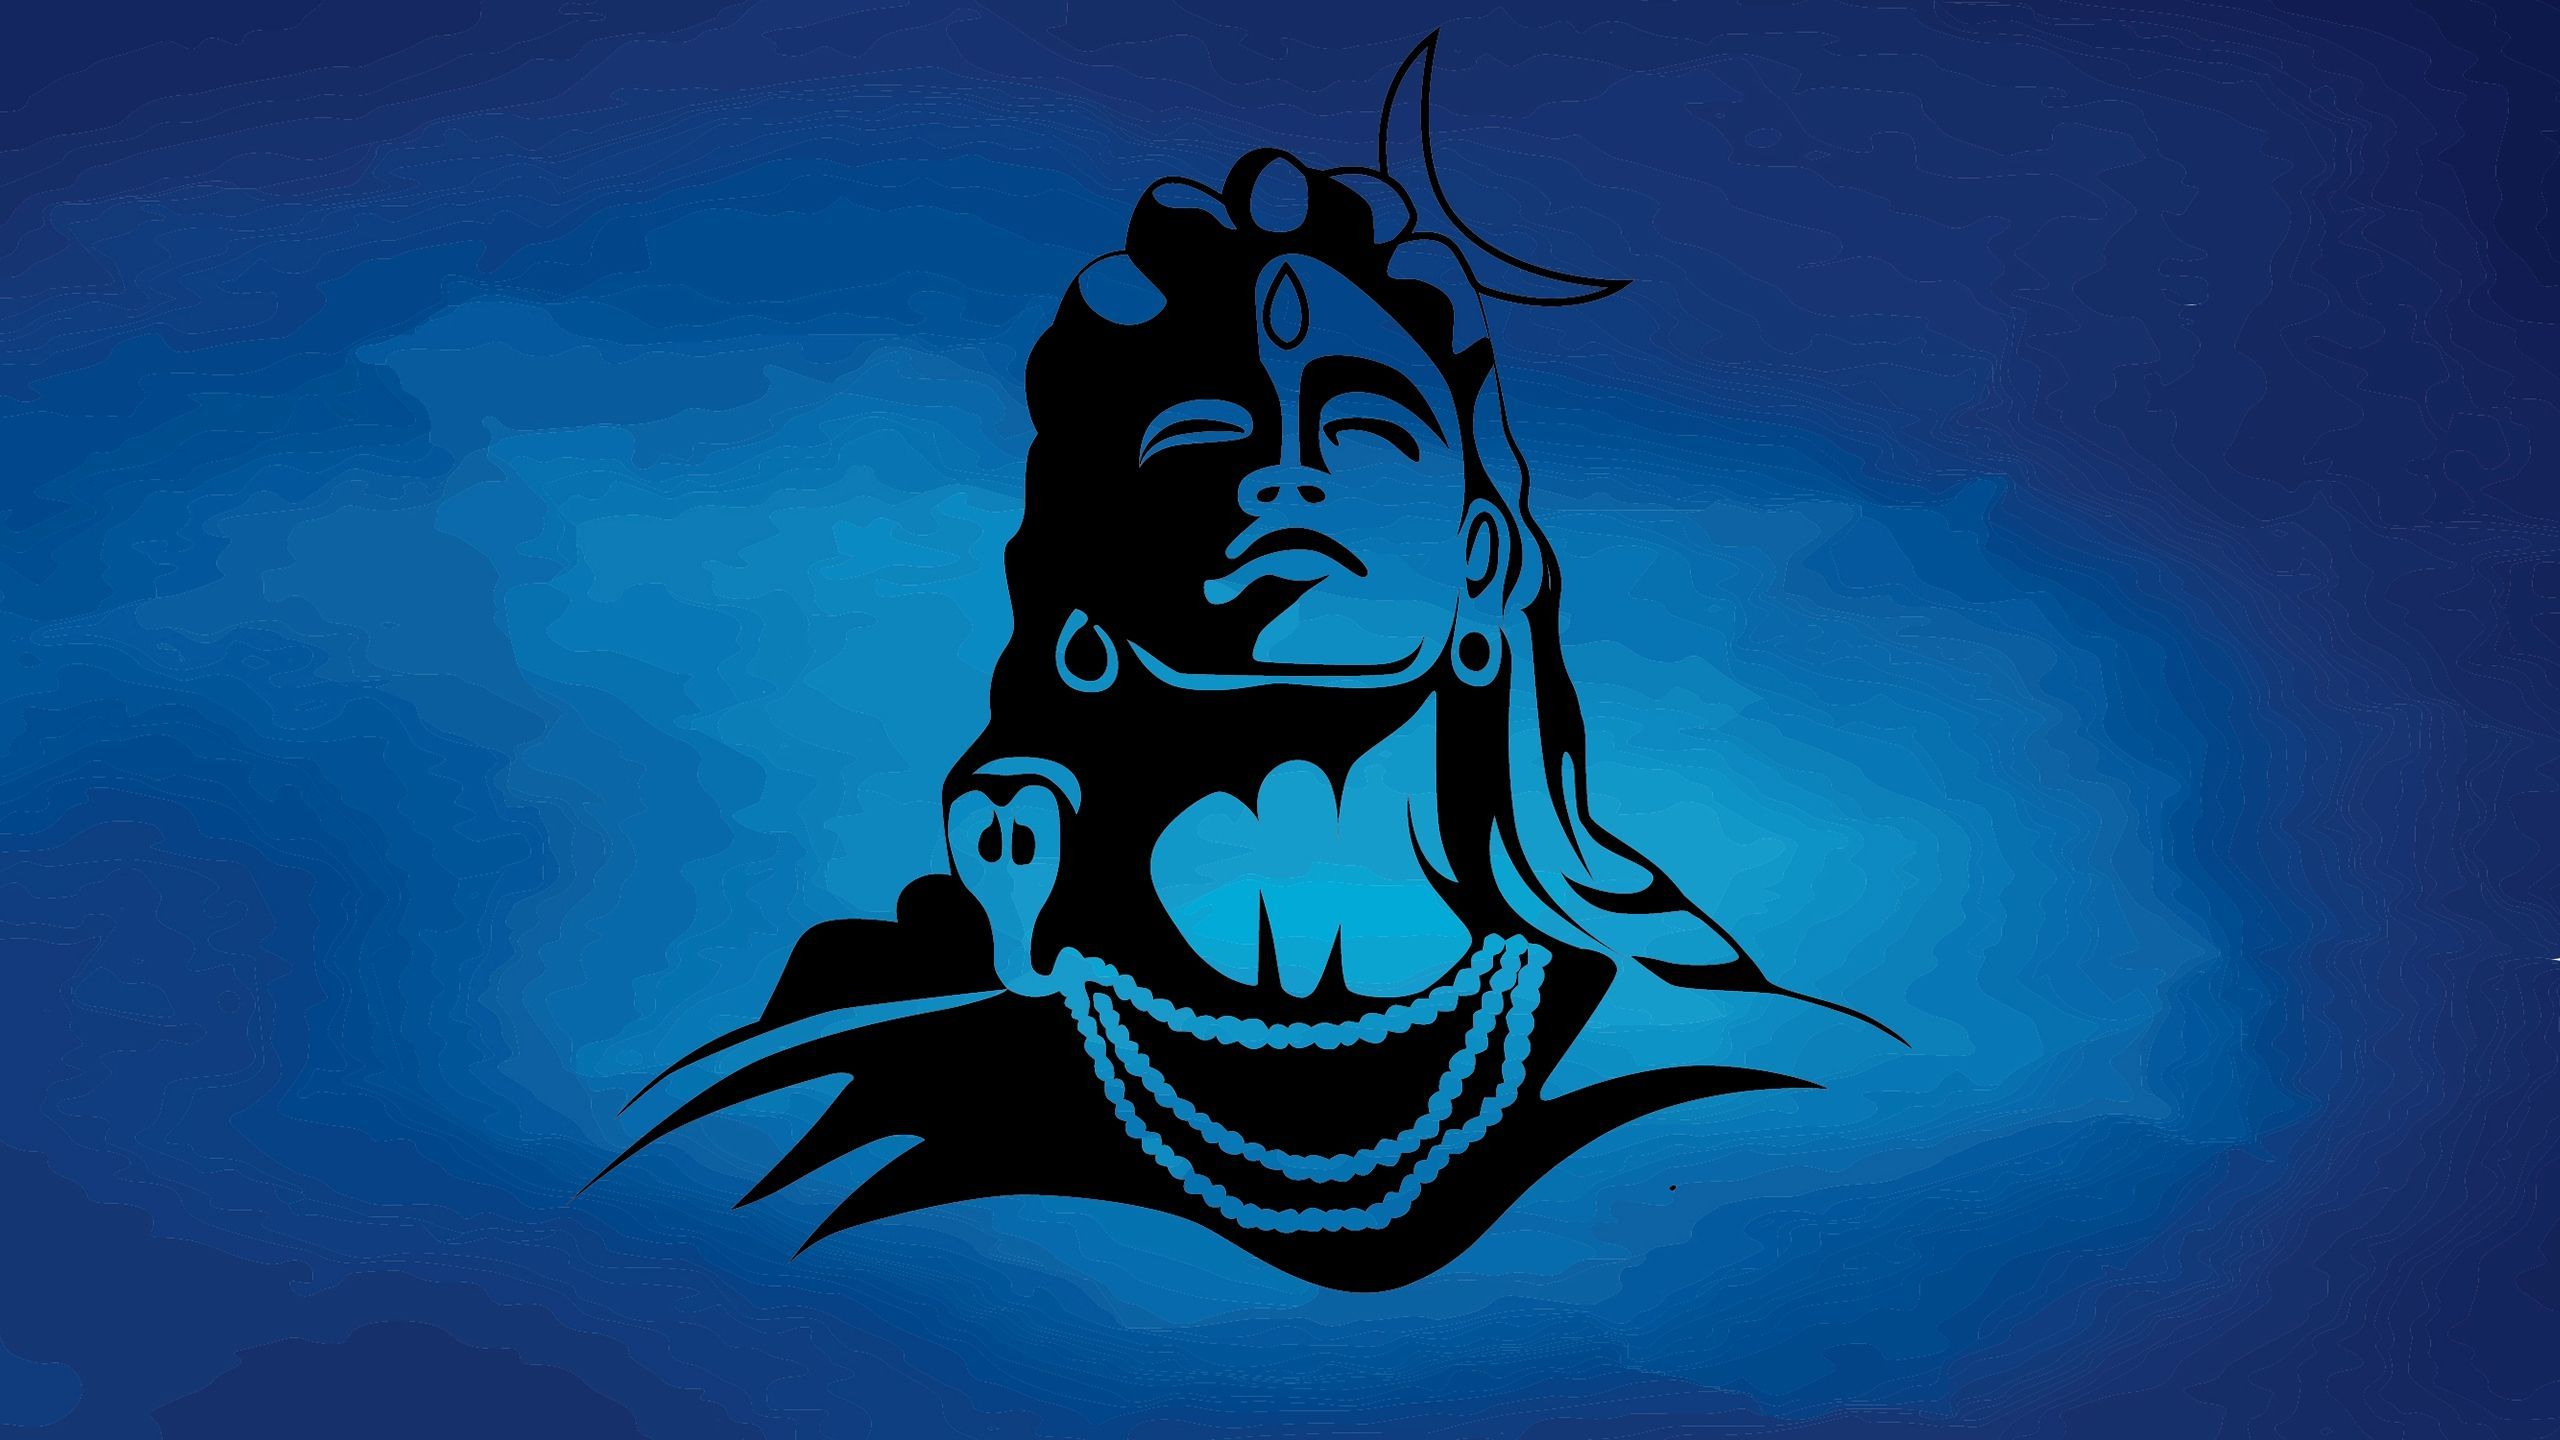 Best Watch Ever In 2020 Lord Shiva Hd Wallpaper 4k Wallpapers For Pc Hd Wallpapers For Pc